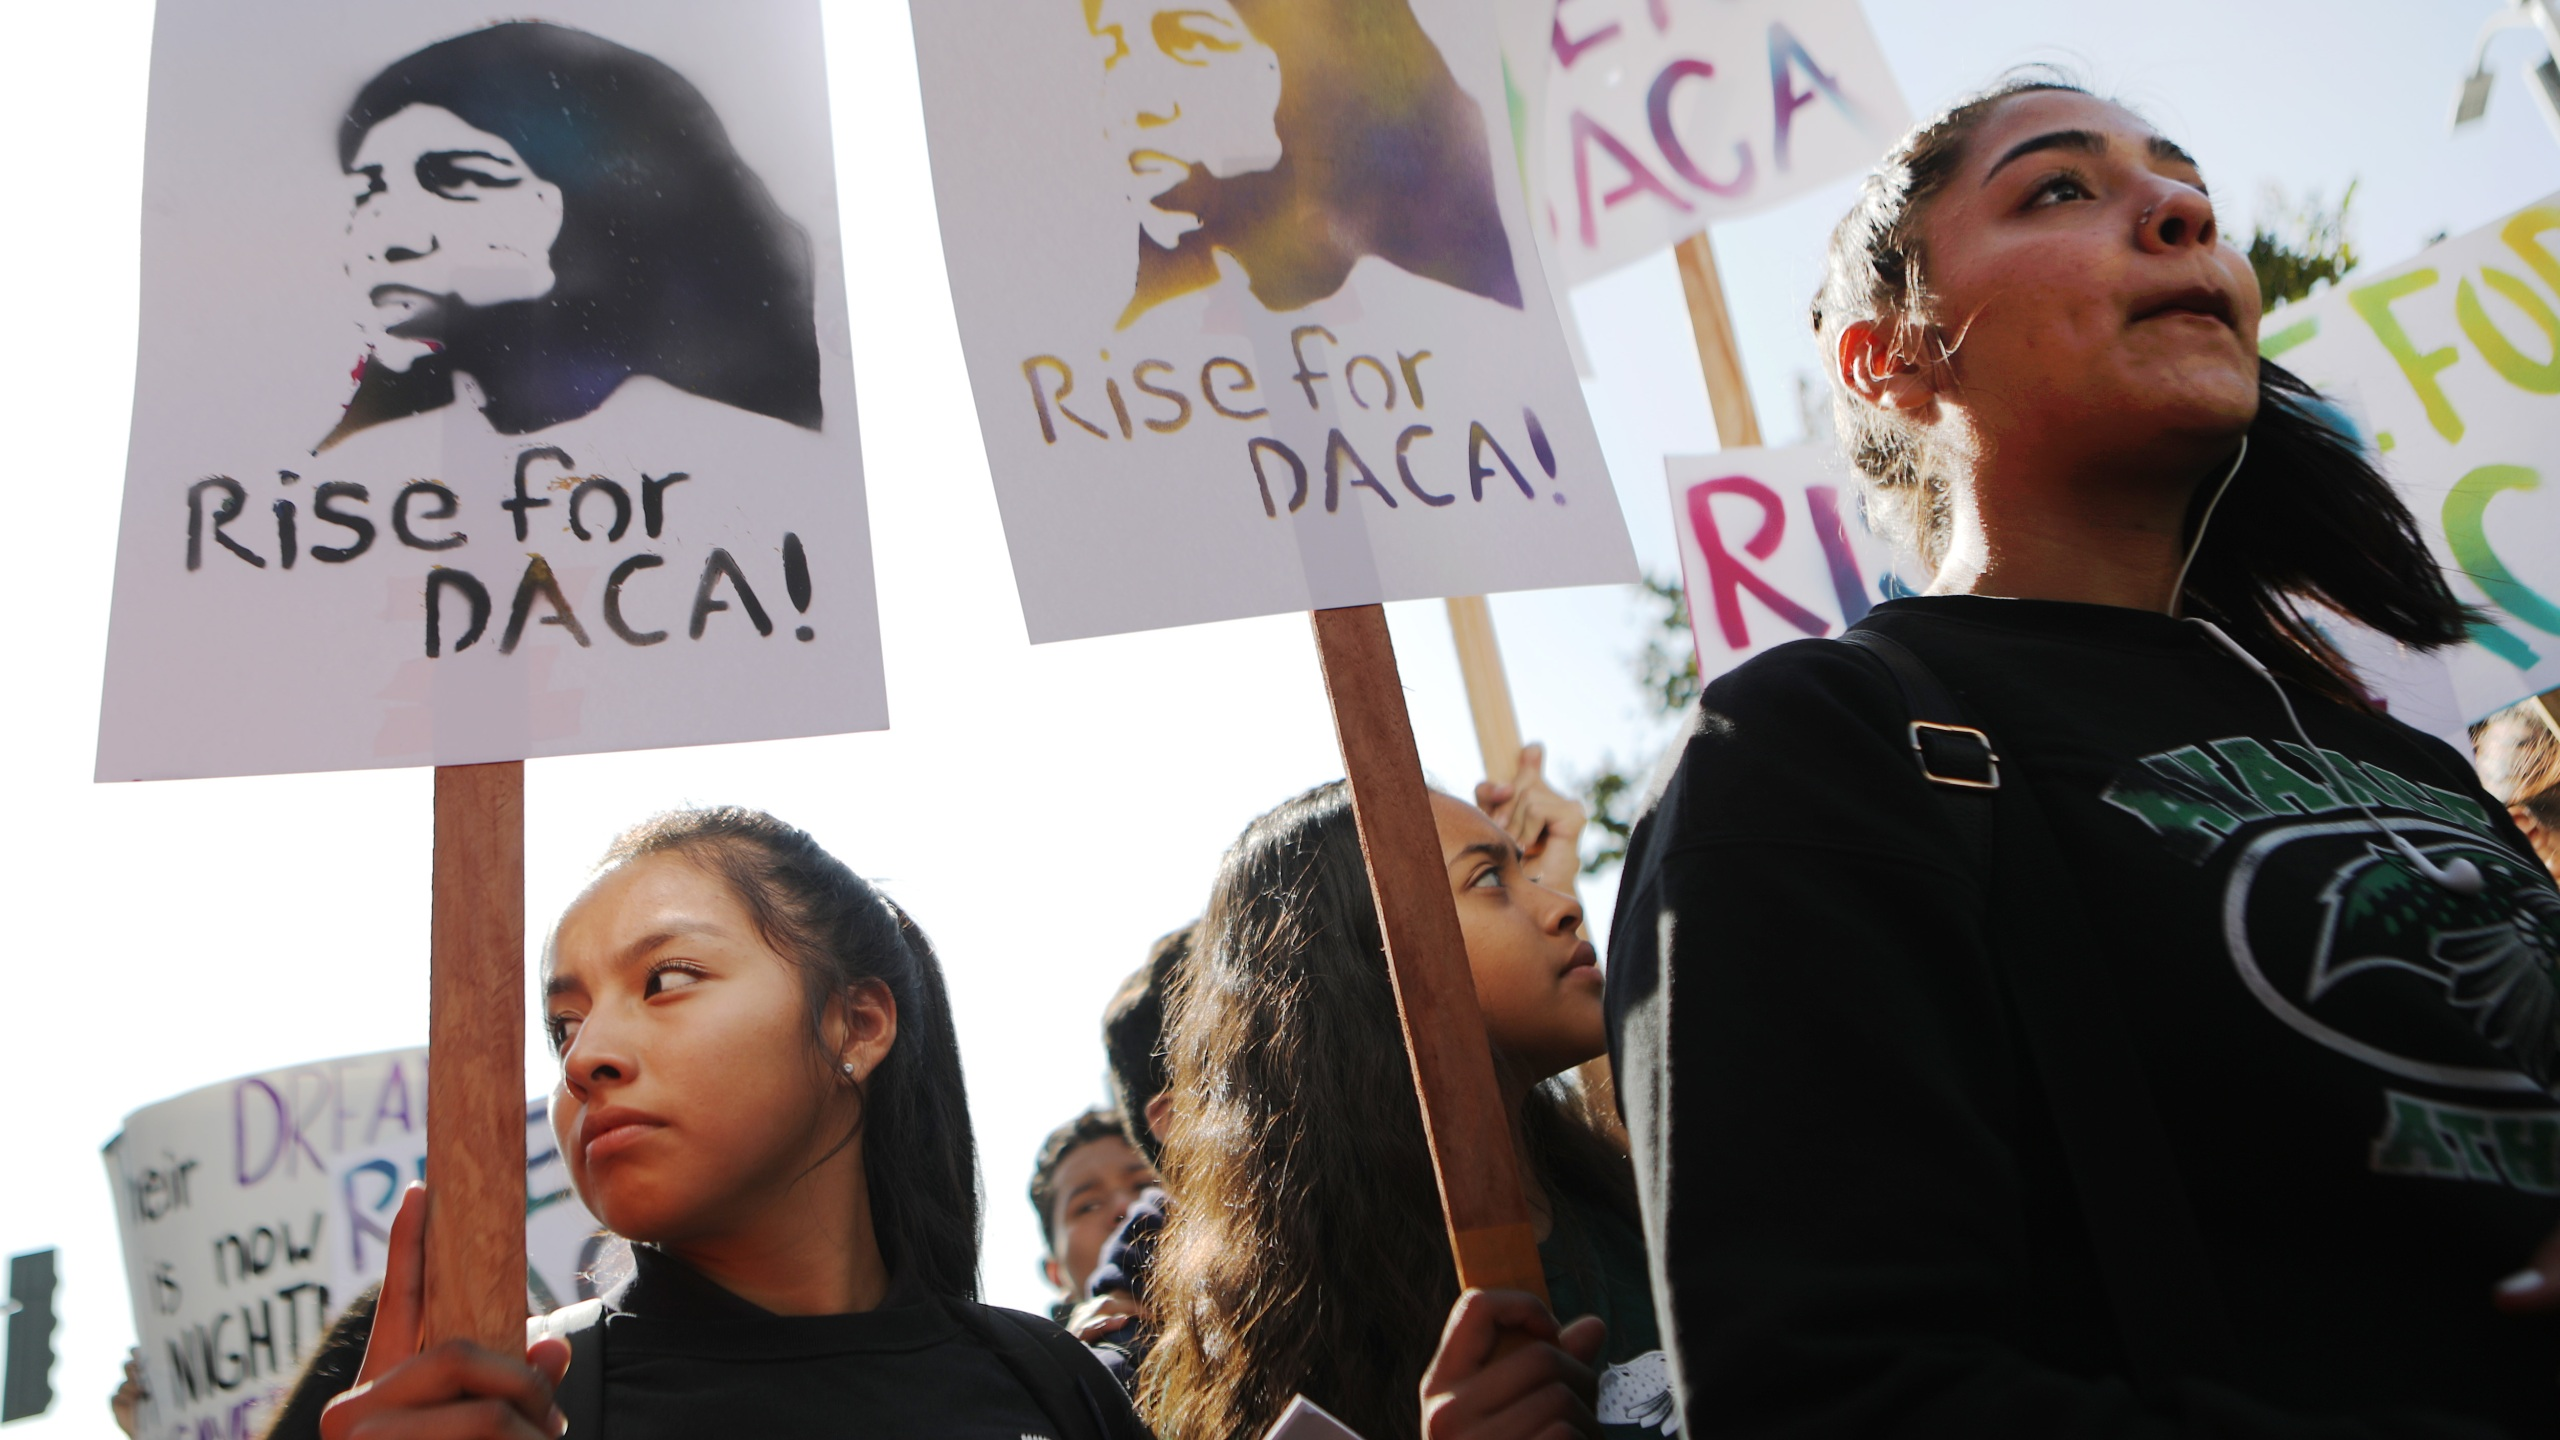 Students and supporters rally in support of DACA recipients in Los Angeles on the day the Supreme Court hears arguments in the Deferred Action for Childhood Arrivals case, Nov. 12, 2019. (Credit: Mario Tama / Getty Images)